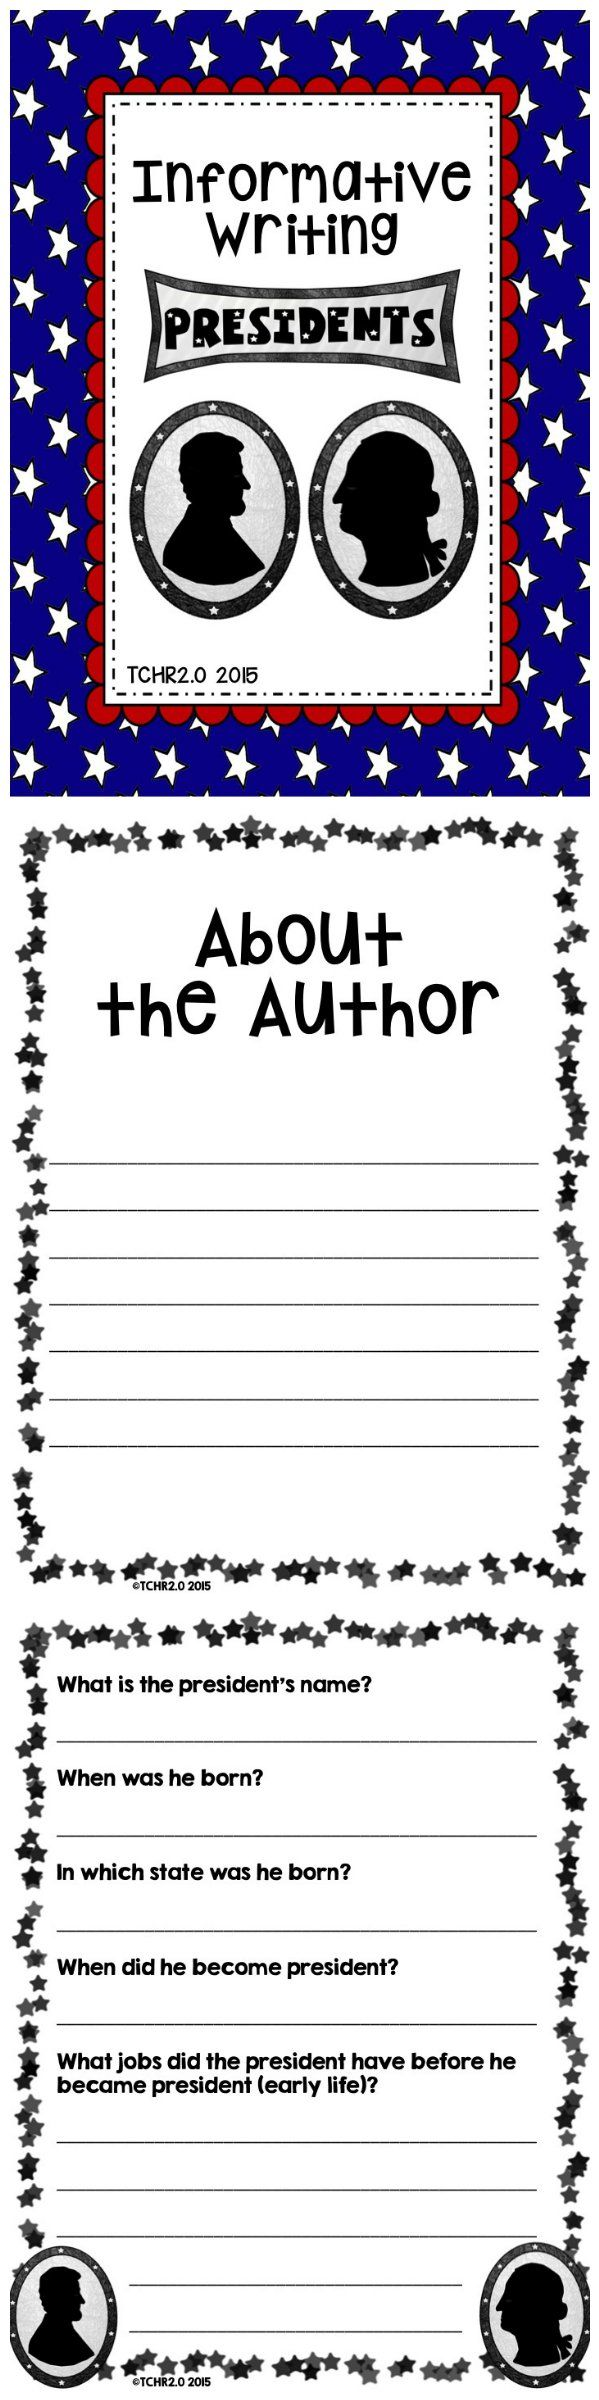 You can use this unit with your students so they can learn about a President of the United States. Students must create an about the author page, find specific information about a president, draw a picture of the president and include a caption, and make a bibliography.